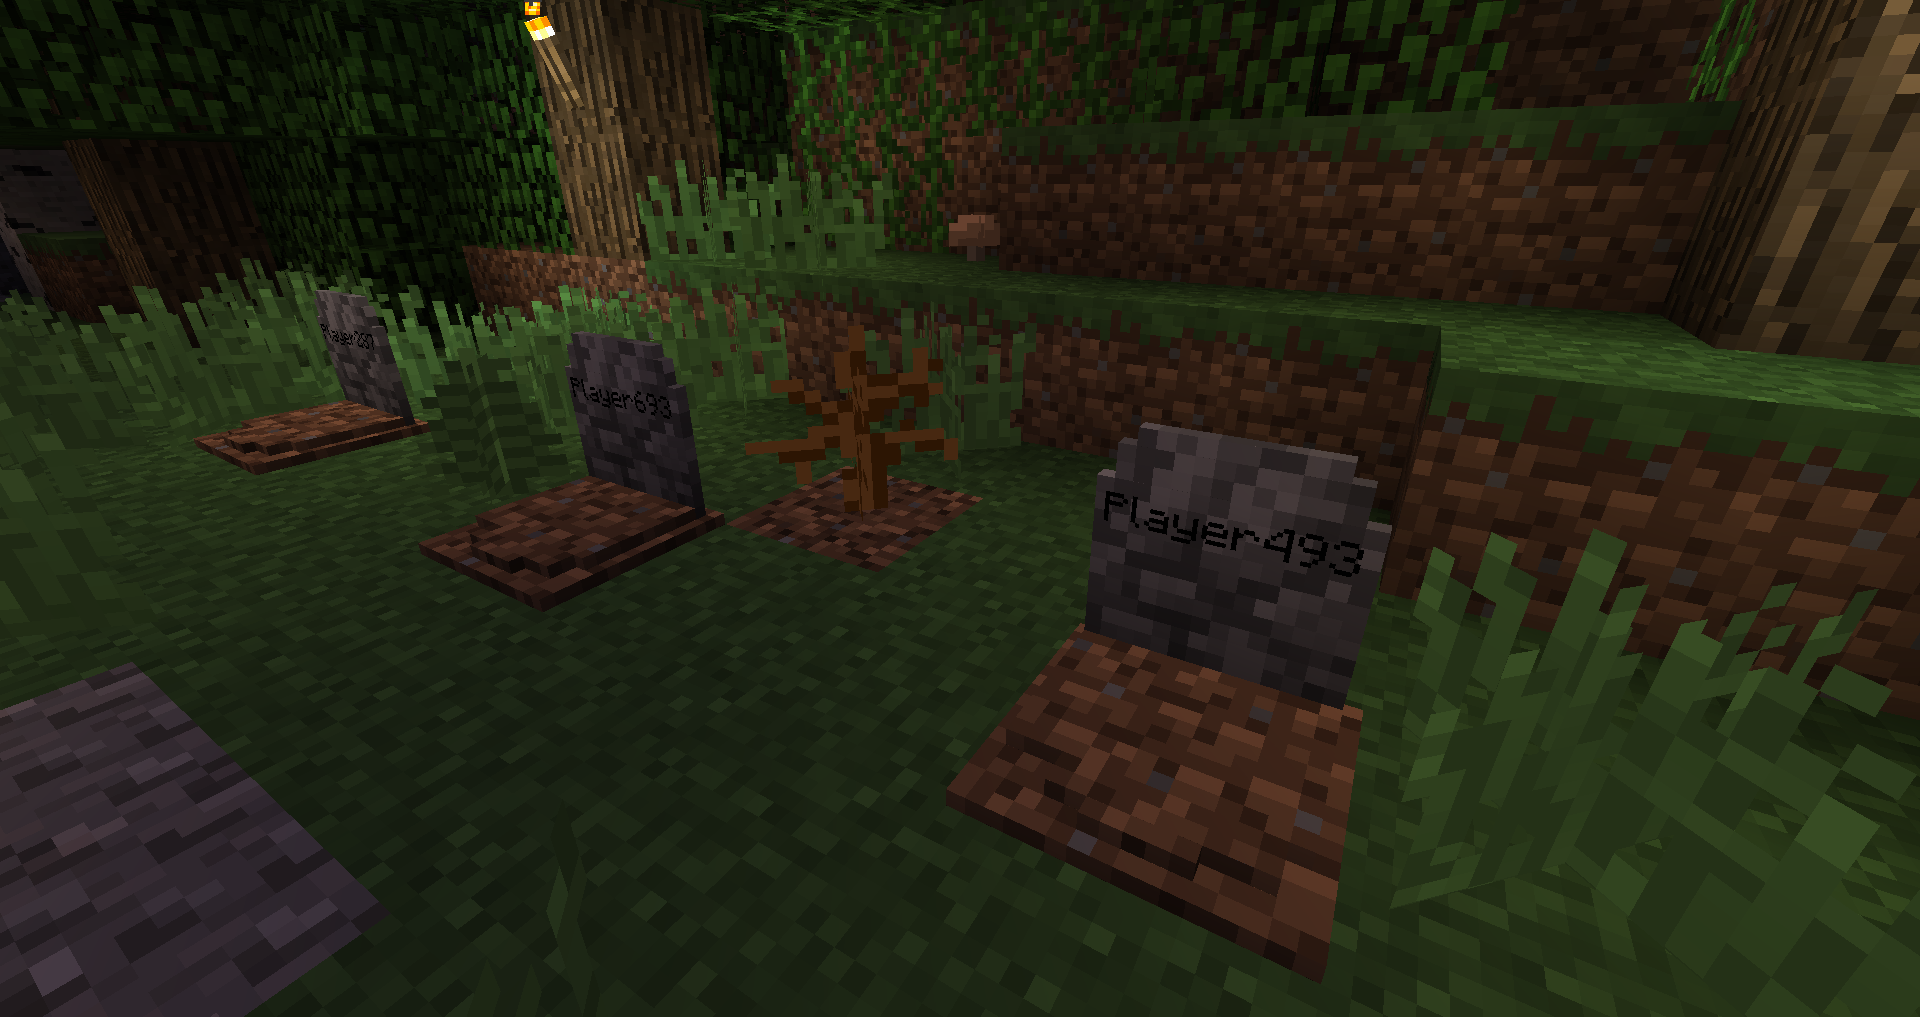 484nbt6t [1.11] GraveStone (EuhDawson) Mod Download